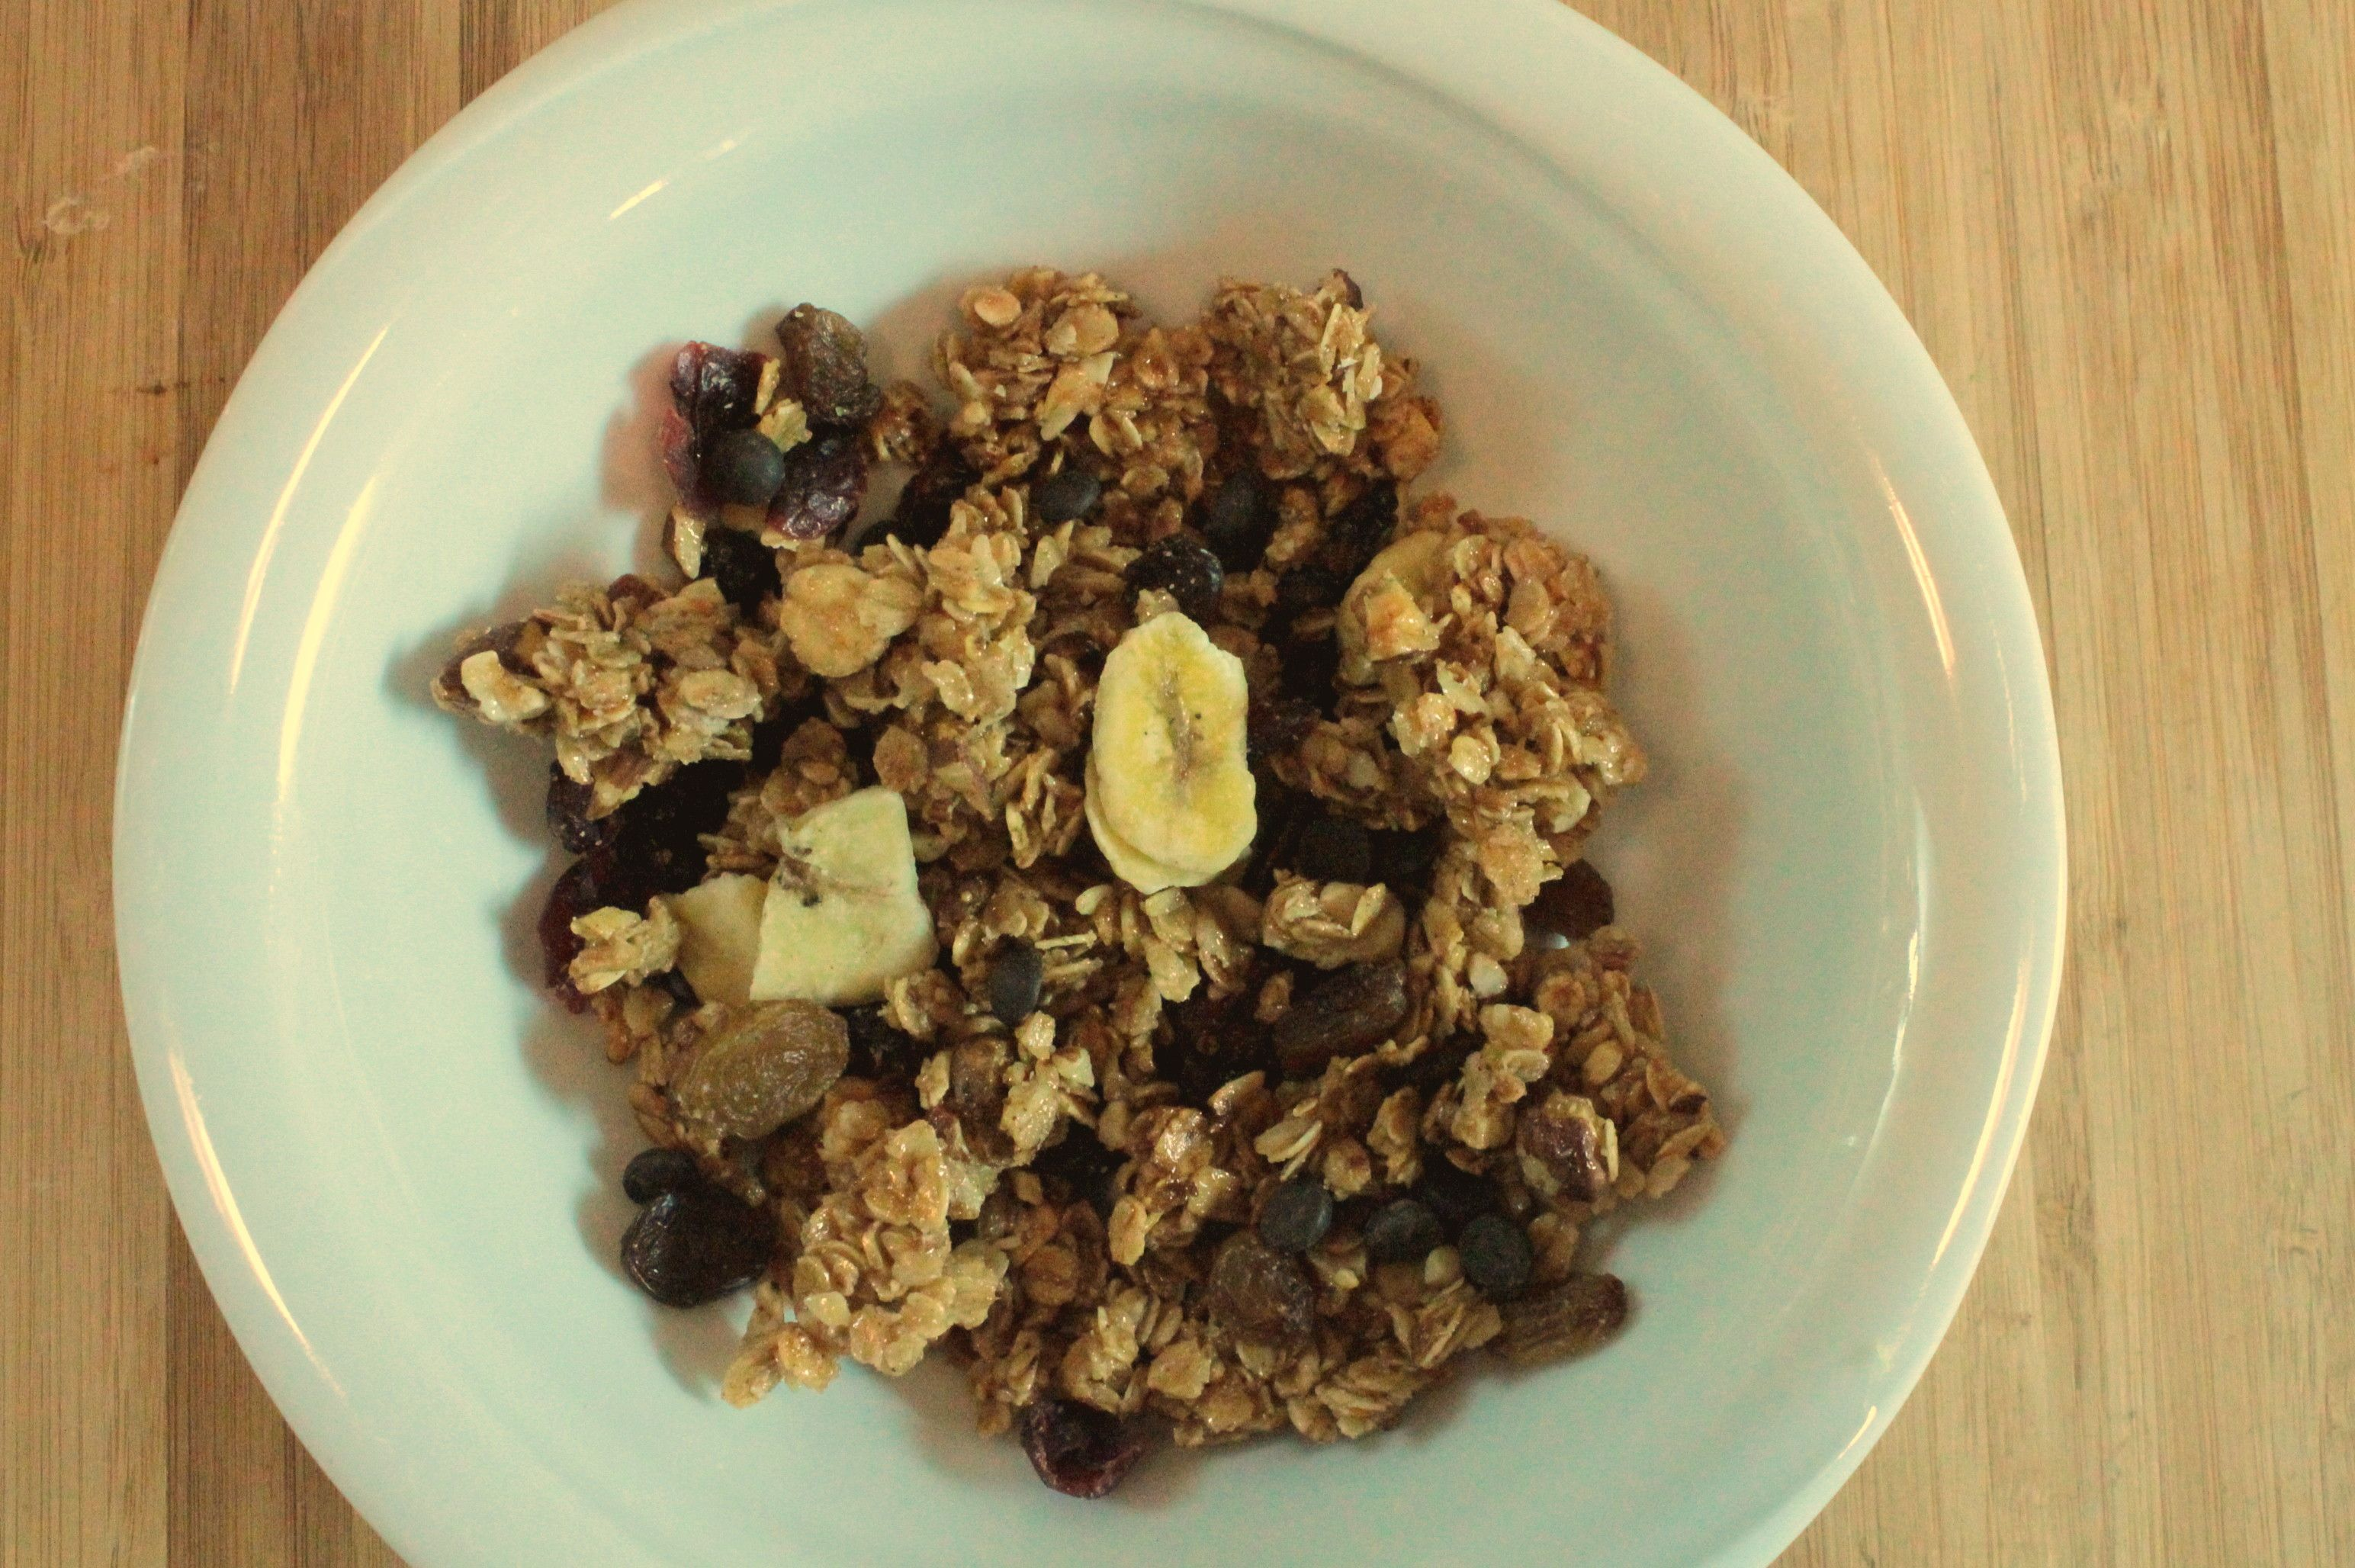 How to make your home made crunchy muesli facebook how to make your home made crunchy muesli facebookeatgoodlivegoodcom do it yourselfhow solutioingenieria Gallery